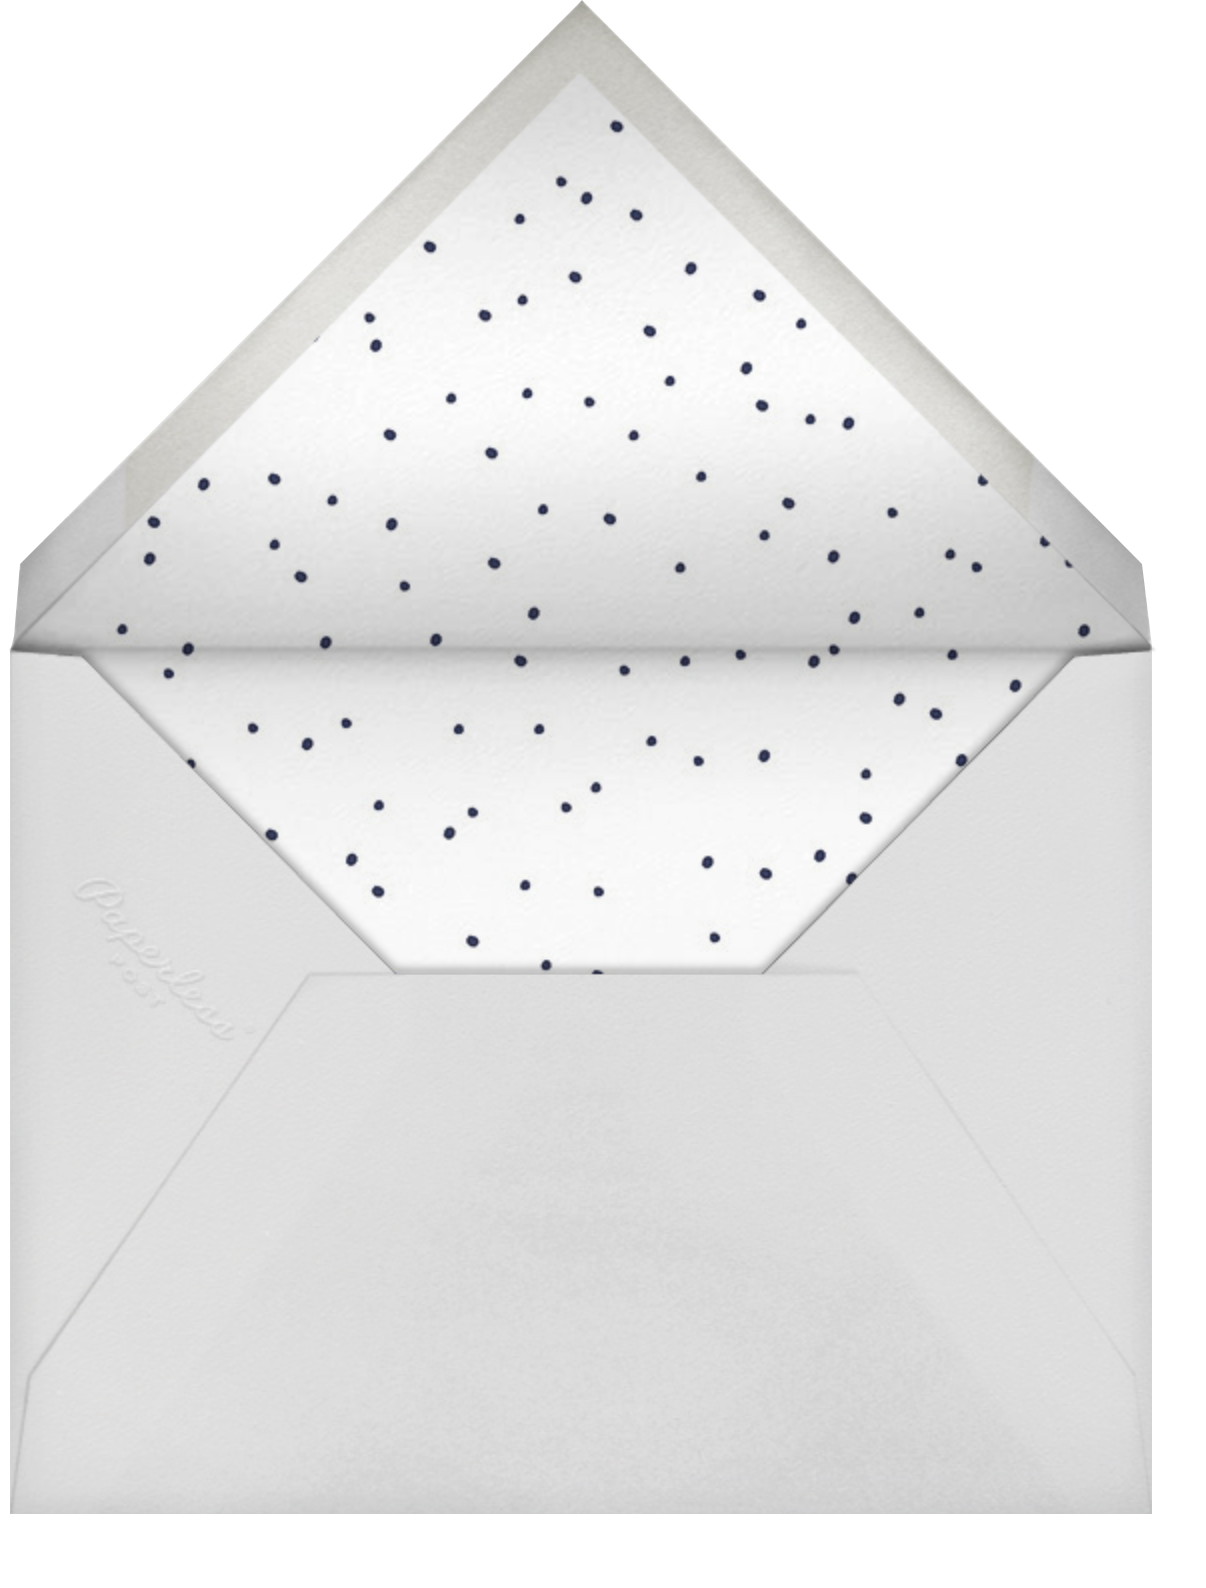 With Hugs and Kisses (Double-Sided) - White - Linda and Harriett - Wedding - envelope back